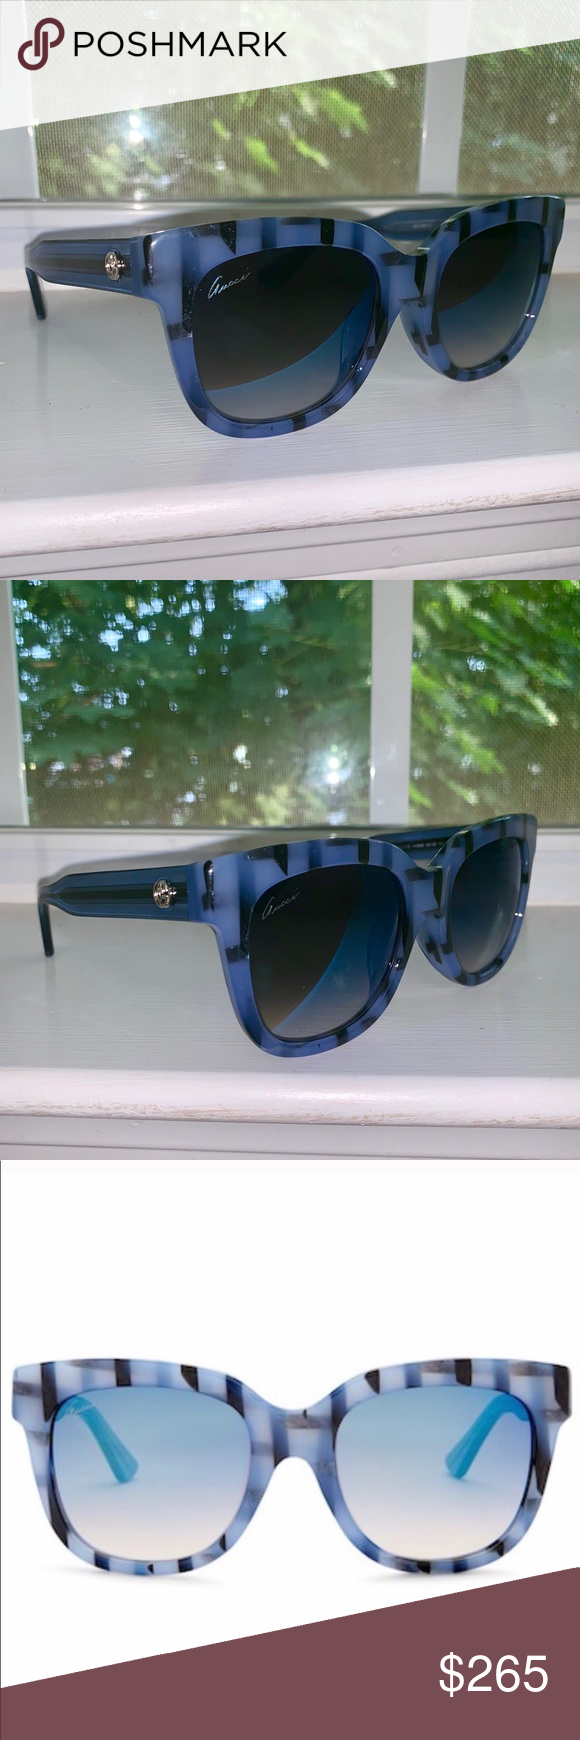 GUCCI Striped Cat Eye Sunglasses NWT GUCCI Striped Cat Eye Sunglasses. Beautiful blue color perfect for summer/beach/vacation